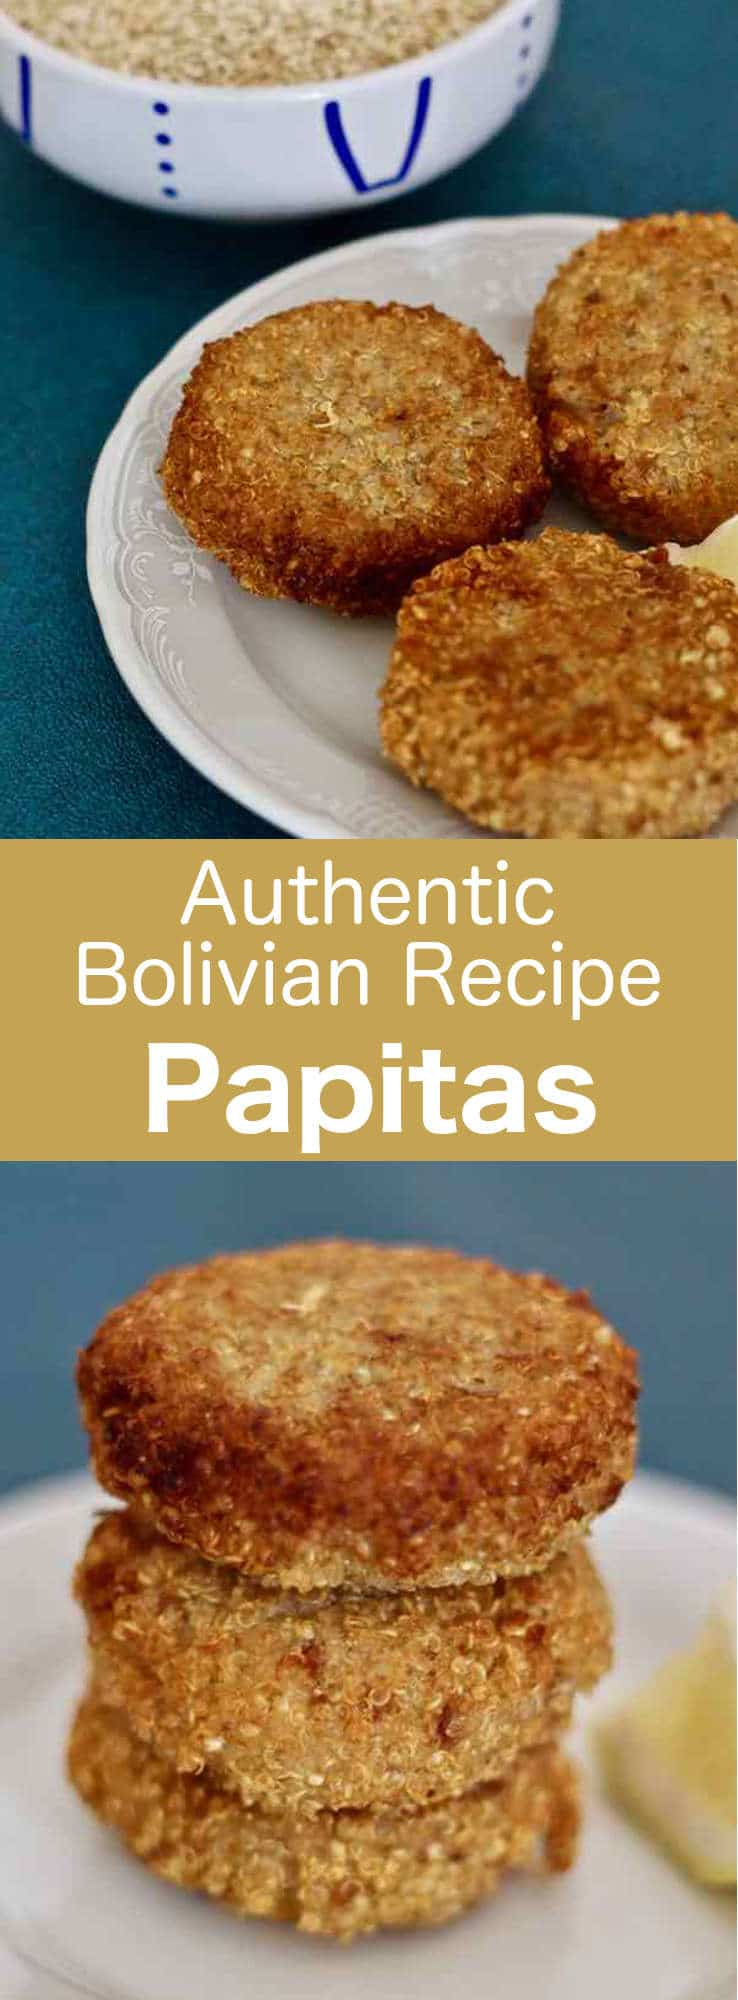 Papitas traditional bolivian recipe 196 flavors papitas are delicious bolivian fried quinoa patties that are stuffed with canned tuna and served with forumfinder Image collections